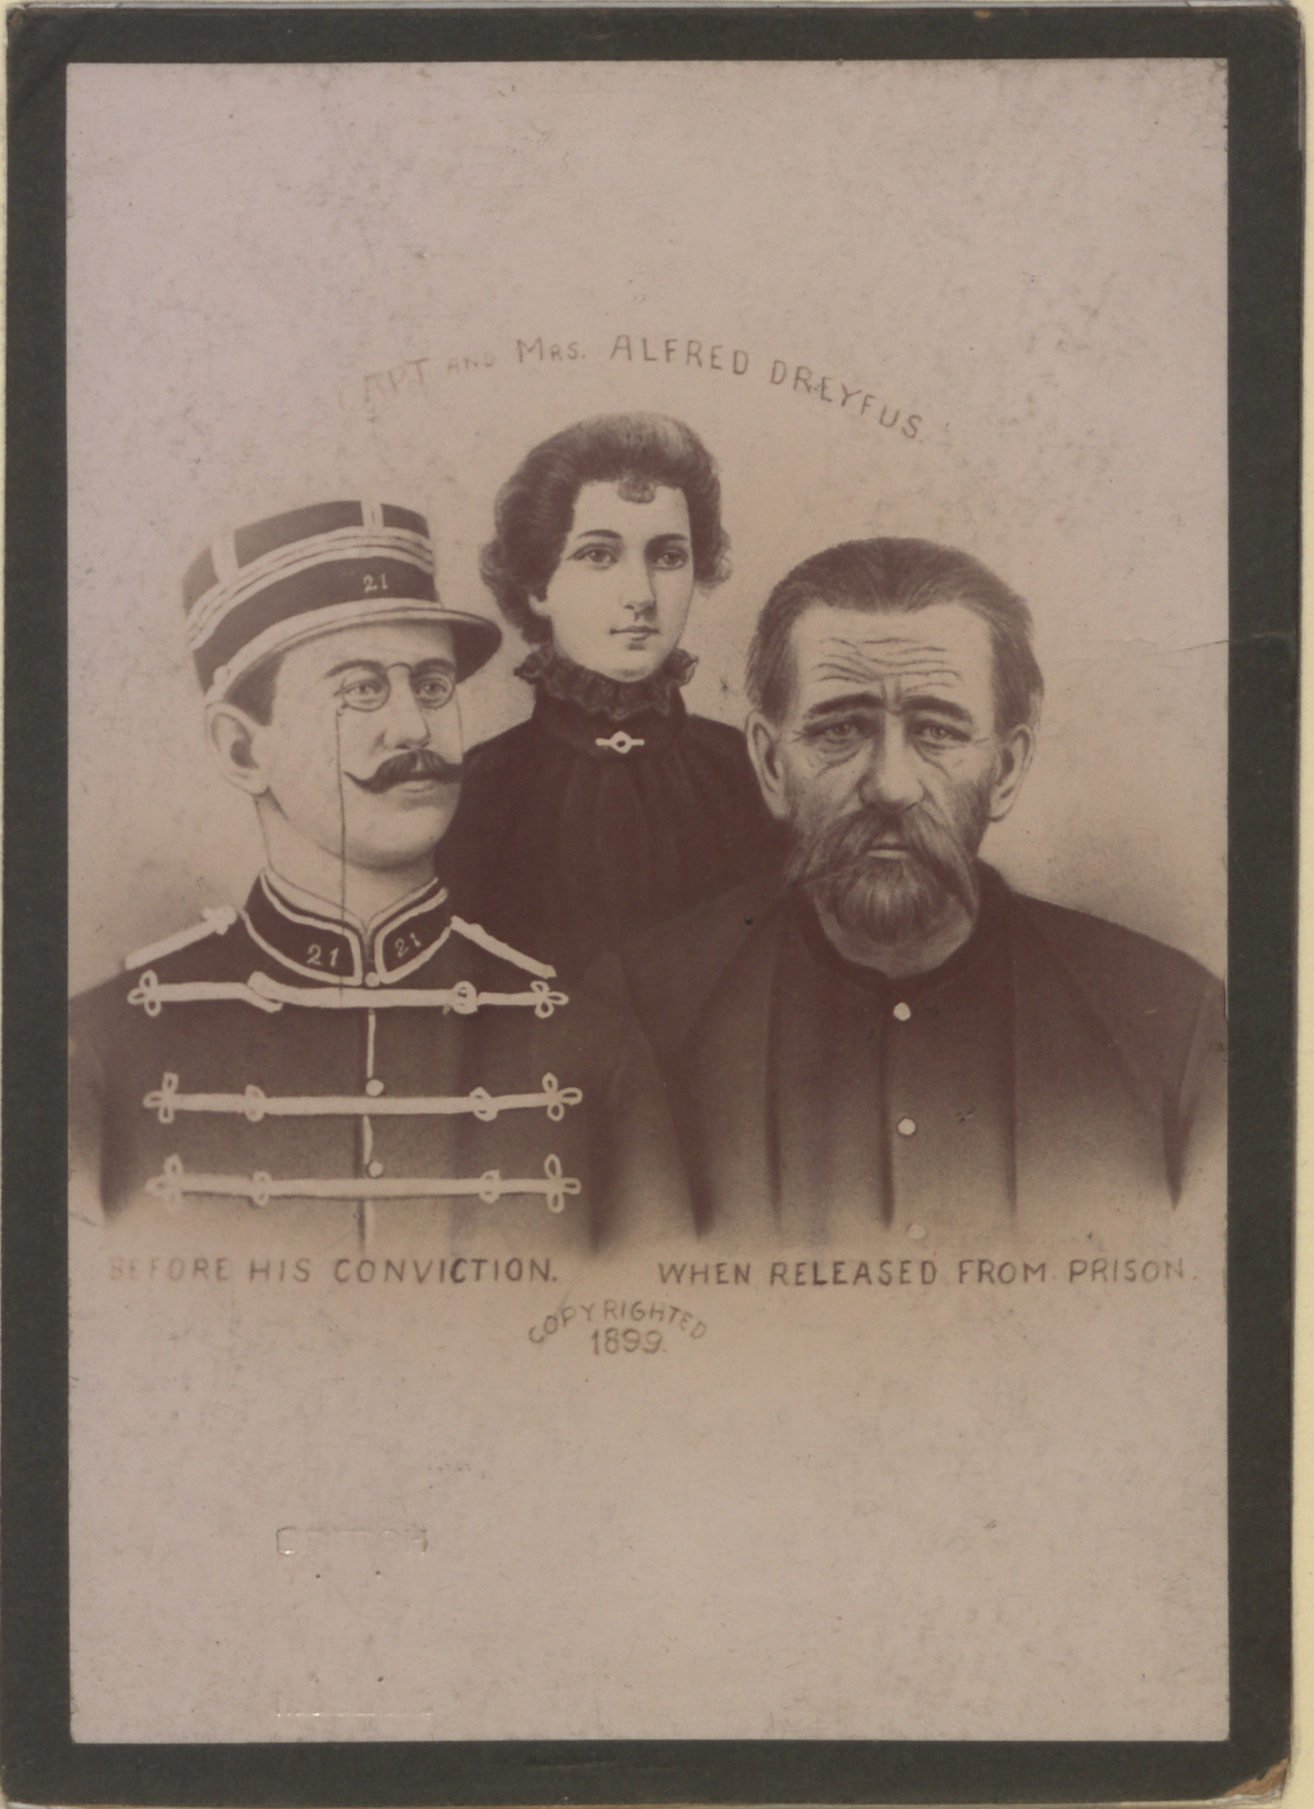 Captain_and_Mrs_Alfred_Dreyfus%2C_before